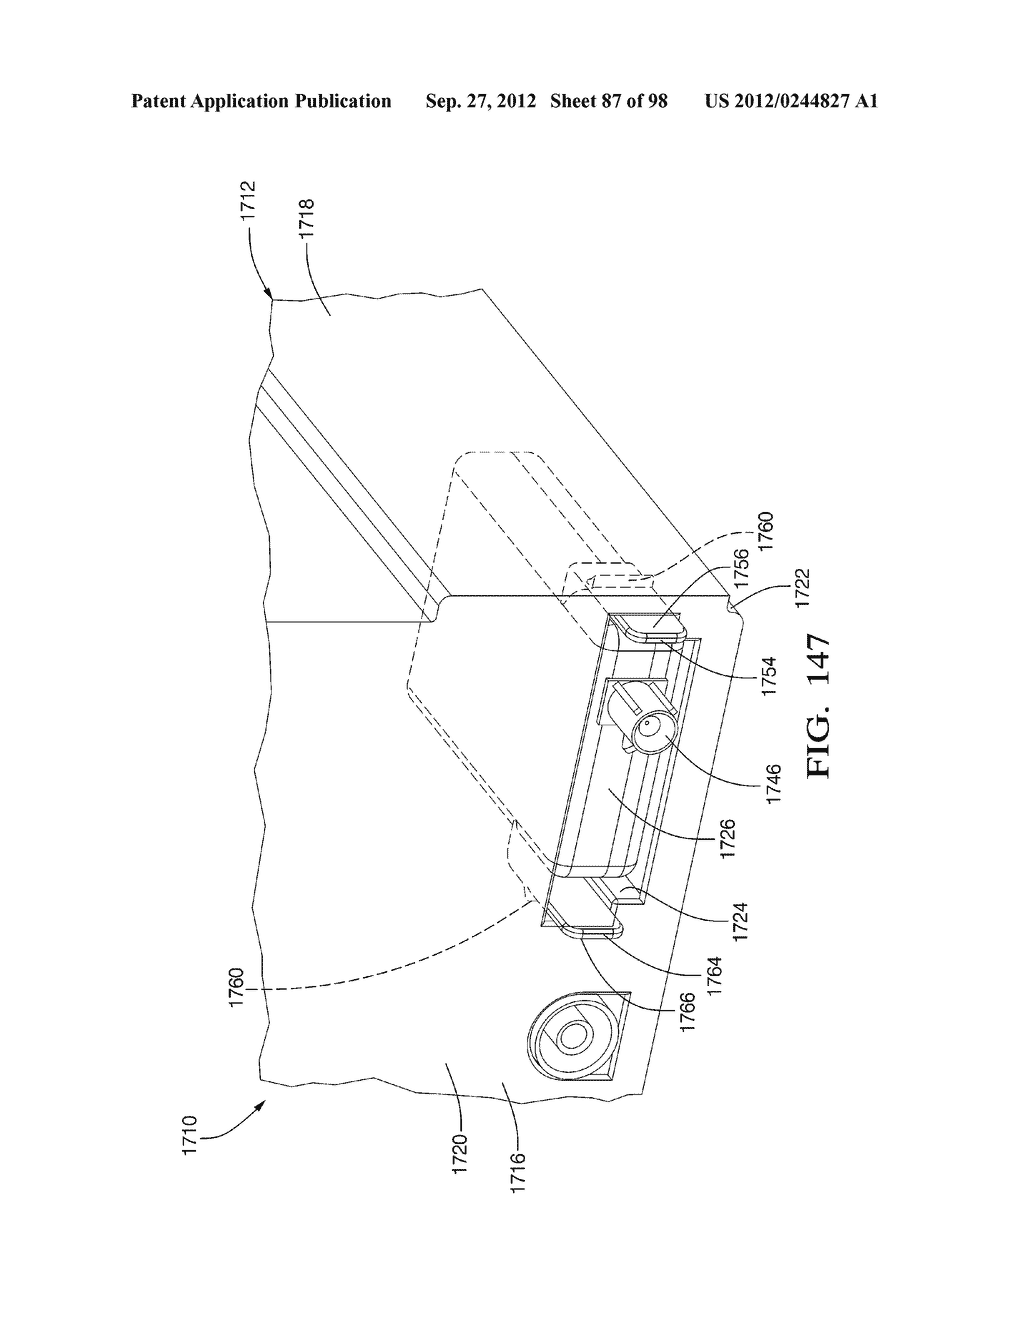 LIGHTWEIGHT AUDIO SYSTEM FOR AUTOMOTIVE APPLICATIONS AND METHOD - diagram, schematic, and image 88